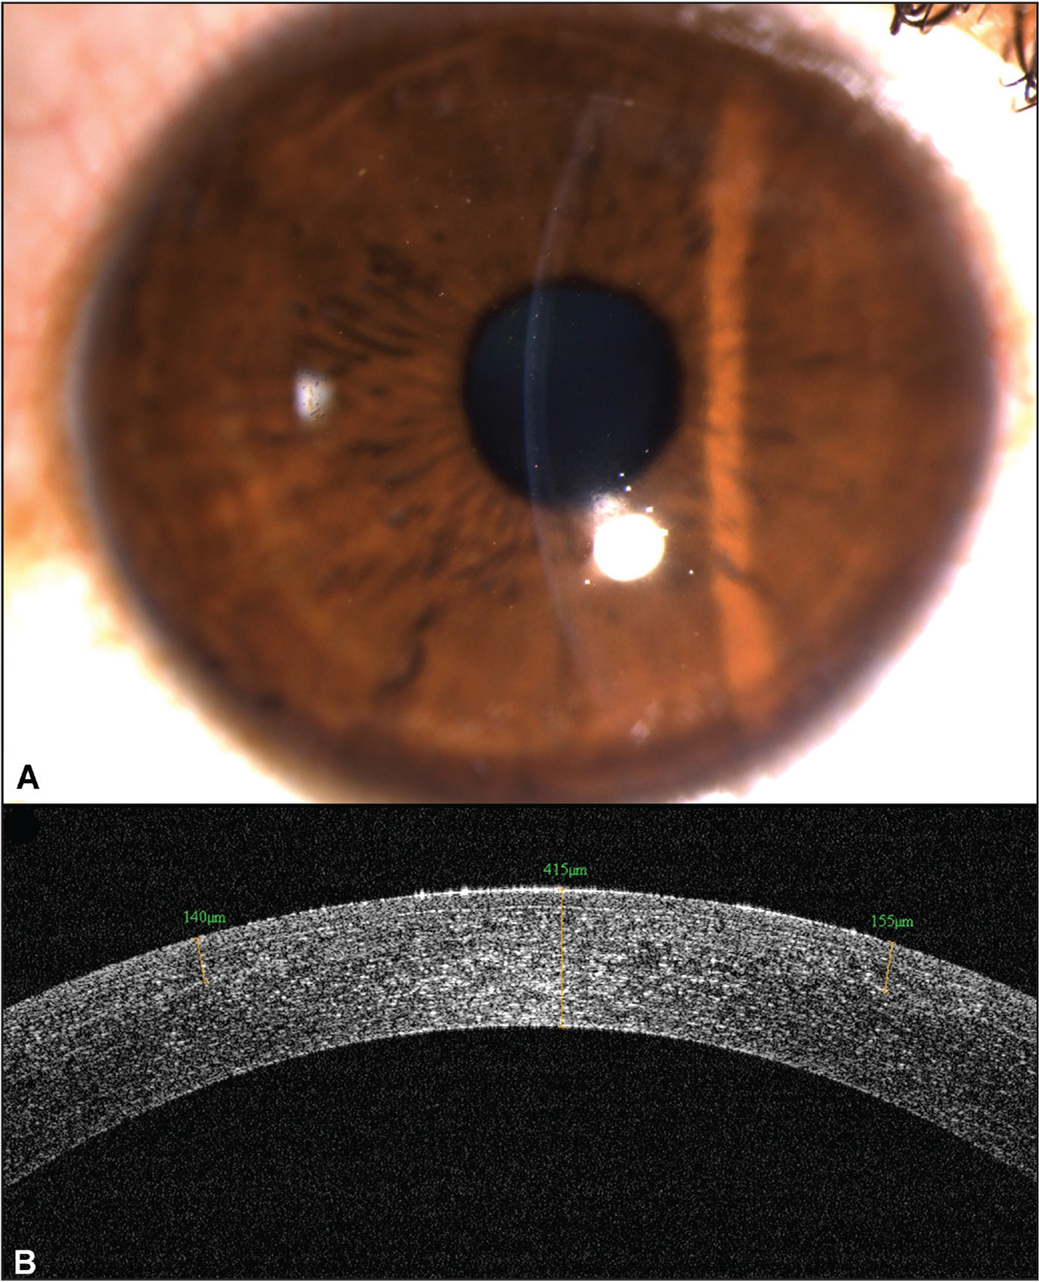 (A) Postoperative day 1 clinical picture showing mild interface haze. (B) Anterior segment optical coherence tomography confirmed the well-apposed, smooth, regular interface without any lenticule remnants.